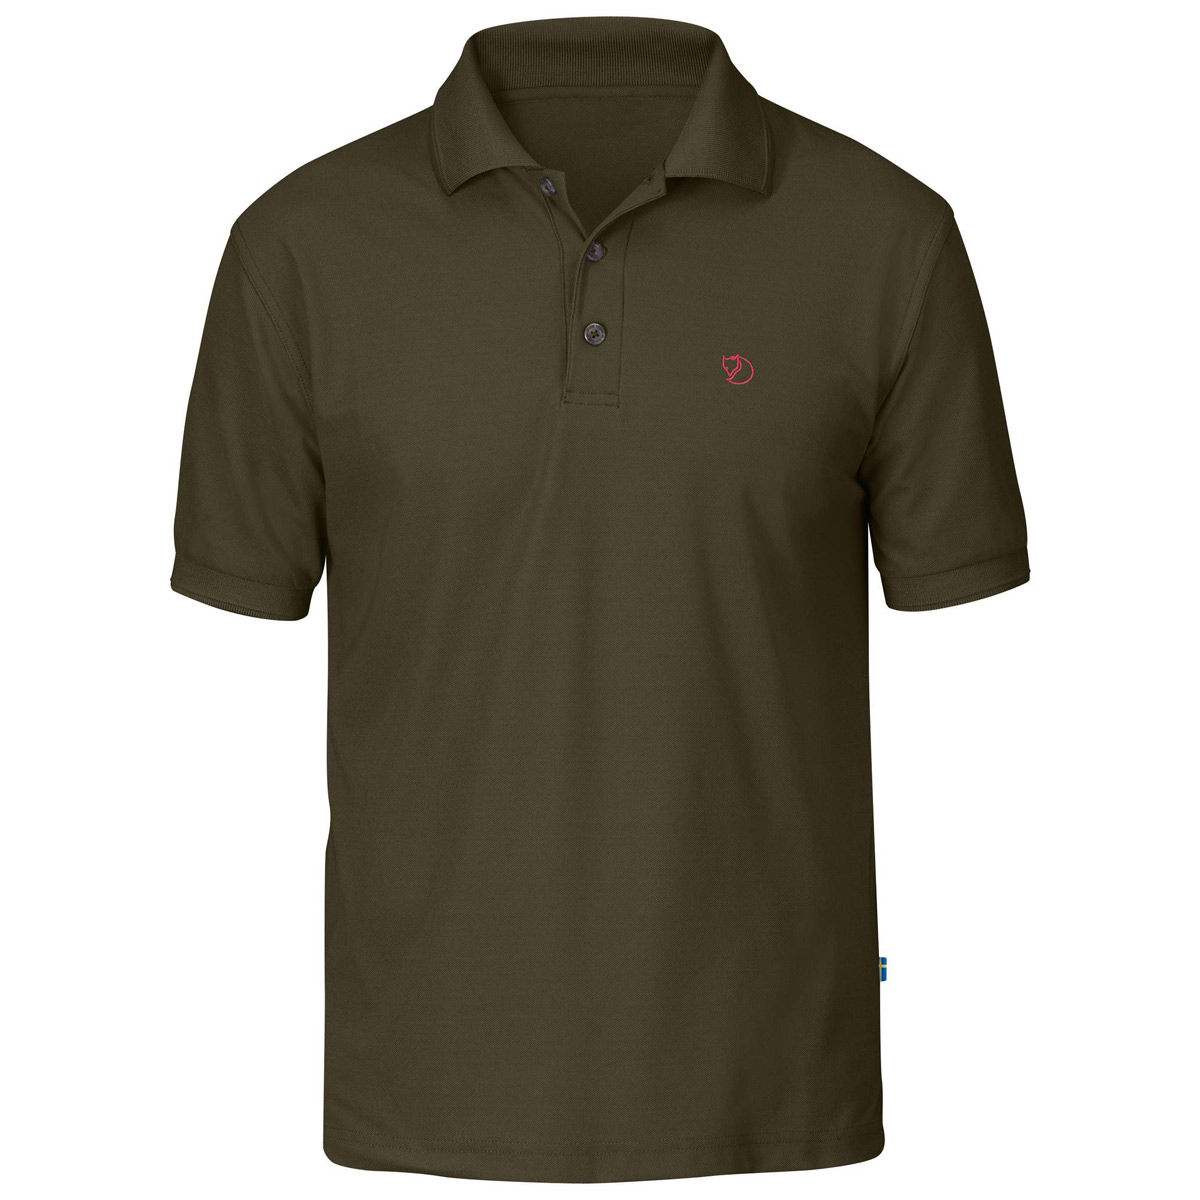 Fjallraven Crowley Pique Shirt - Dark Olive